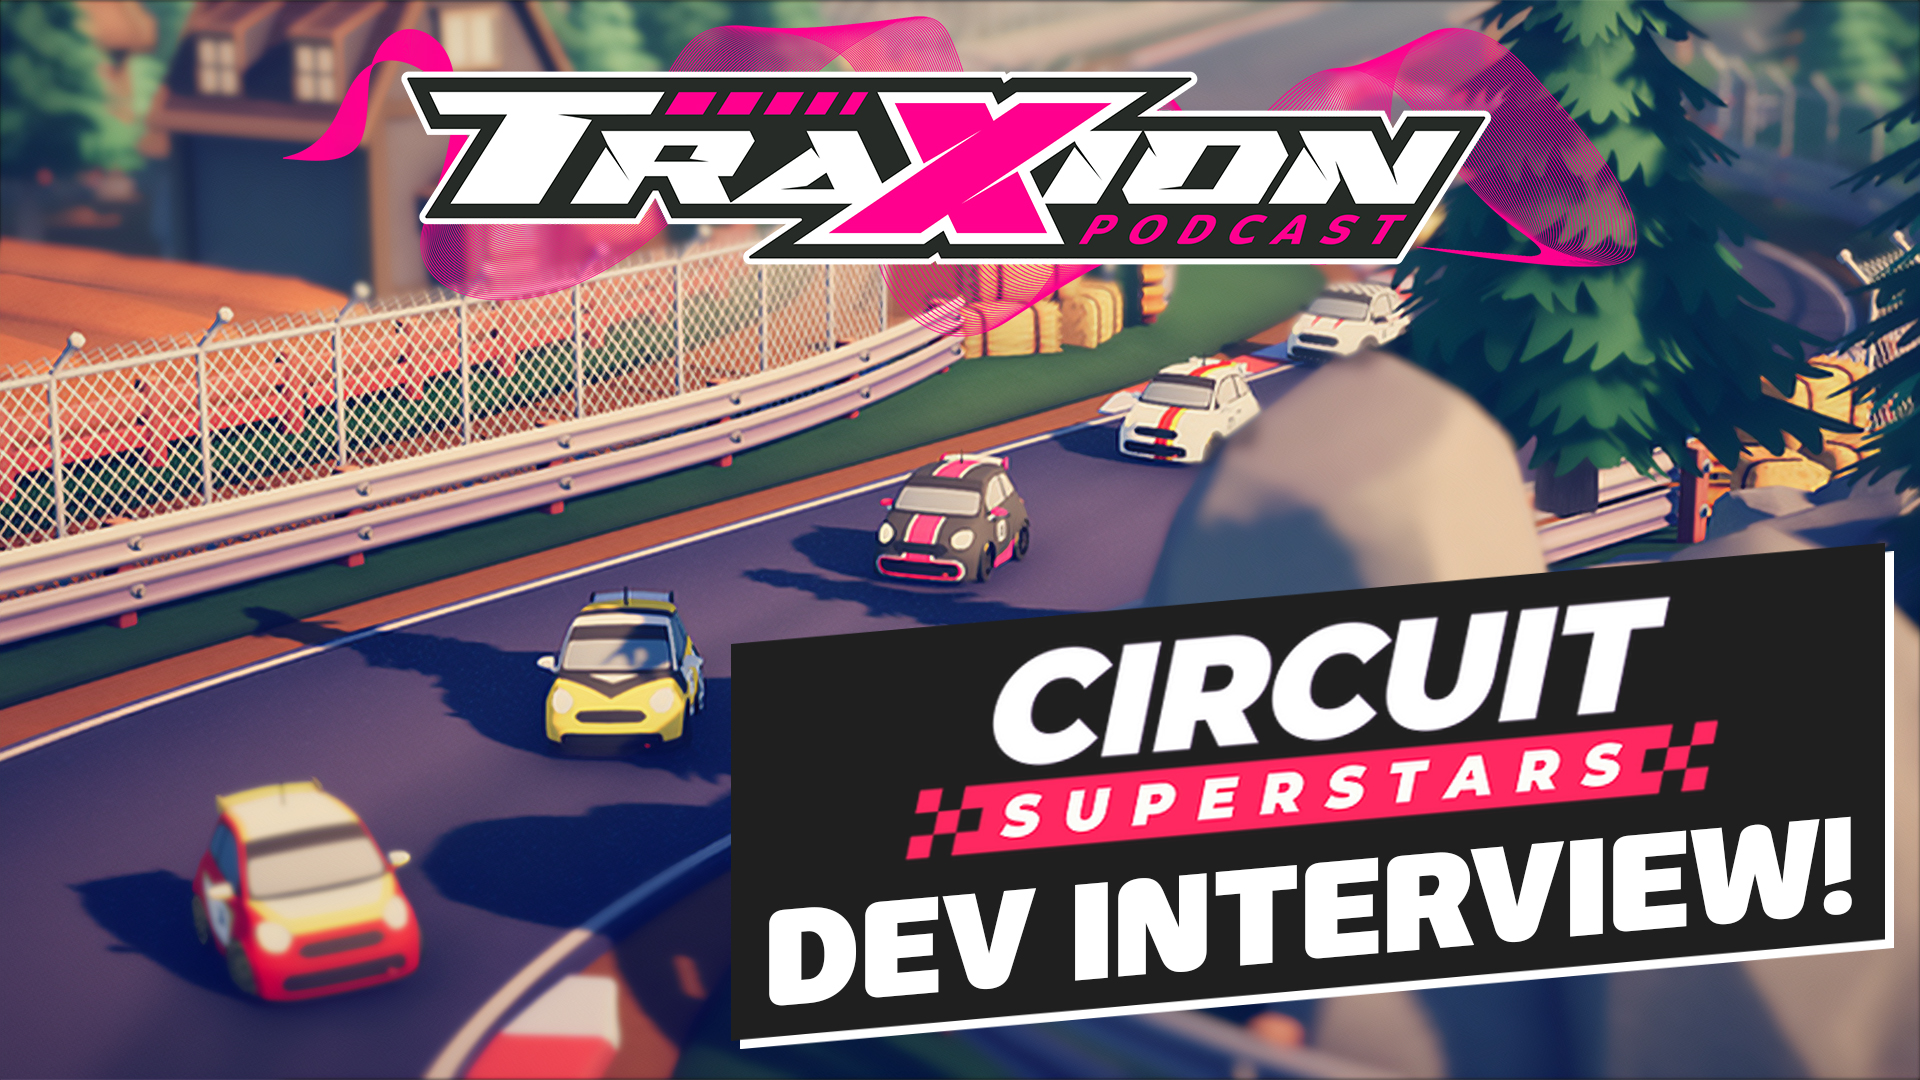 Circuit Superstars developers explain the game's origins | Traxion.GG Podcast